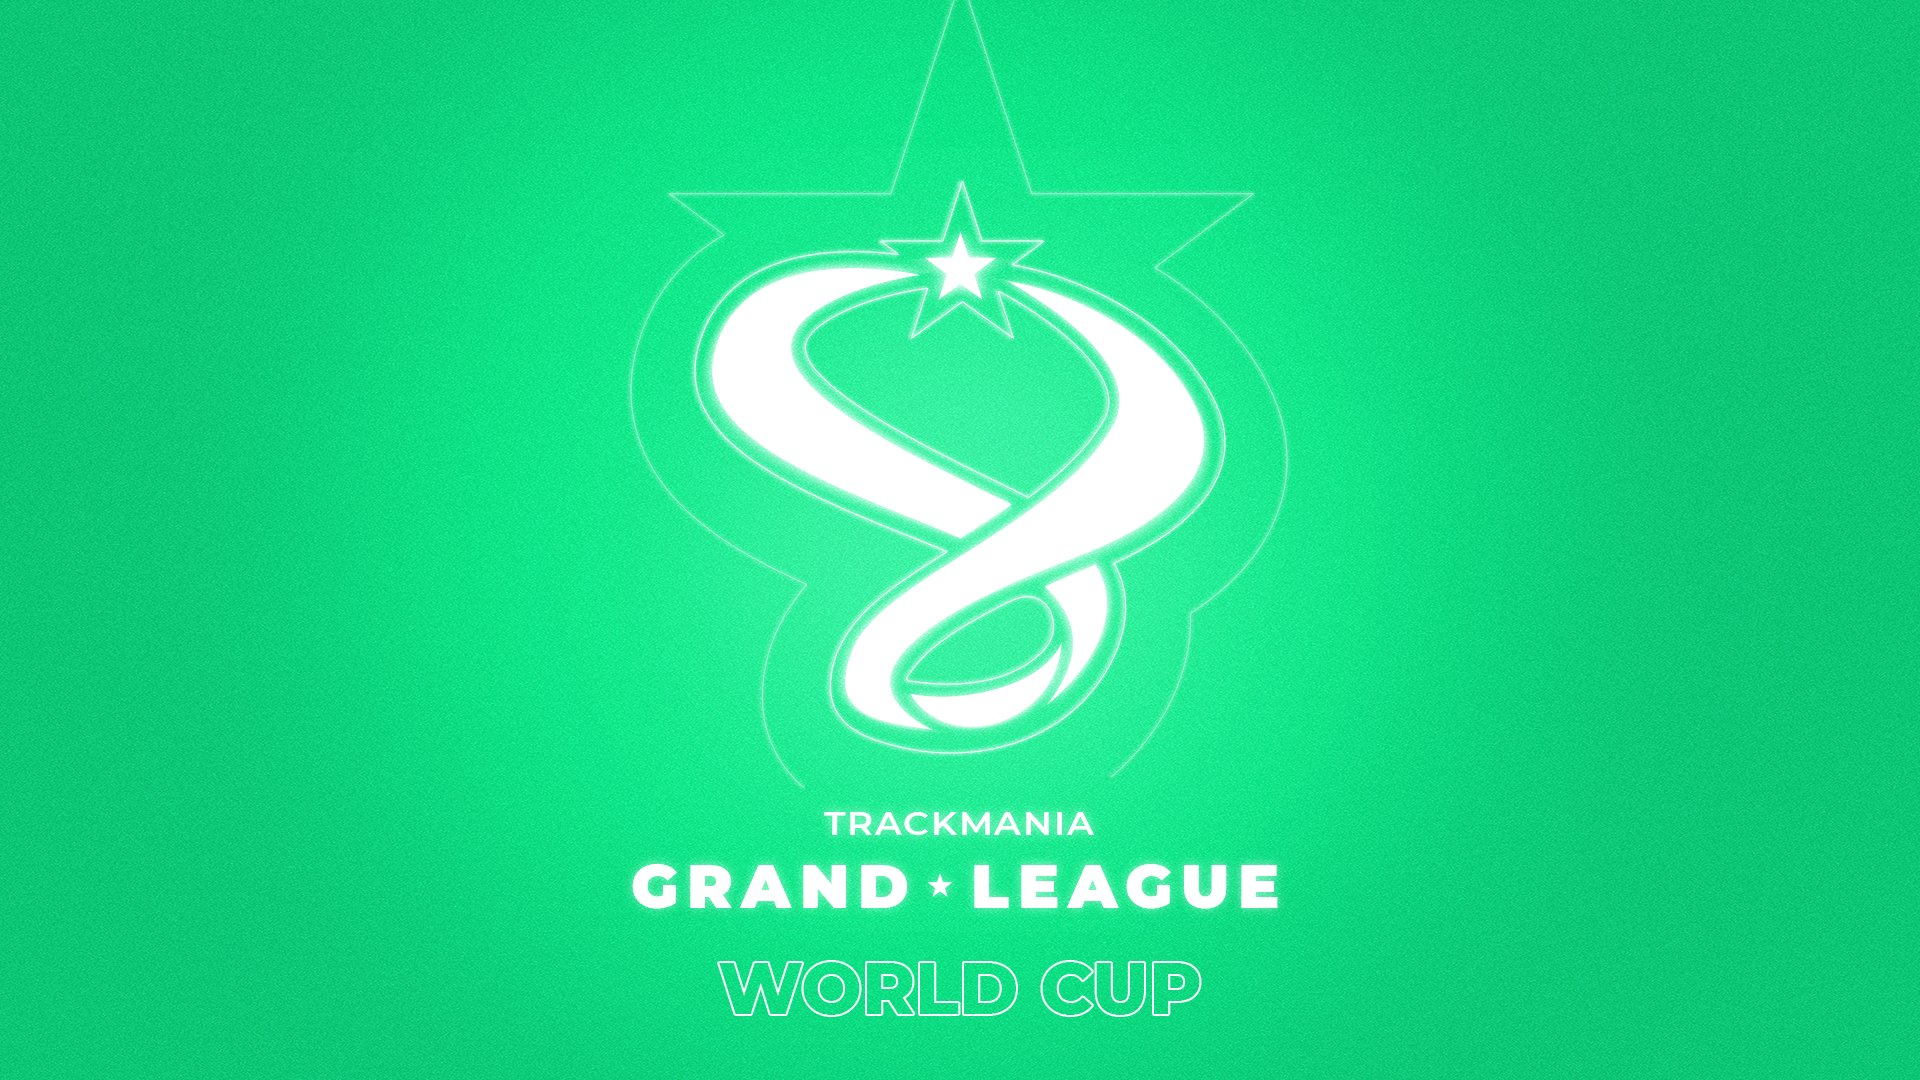 Trackmania Grand League Logo